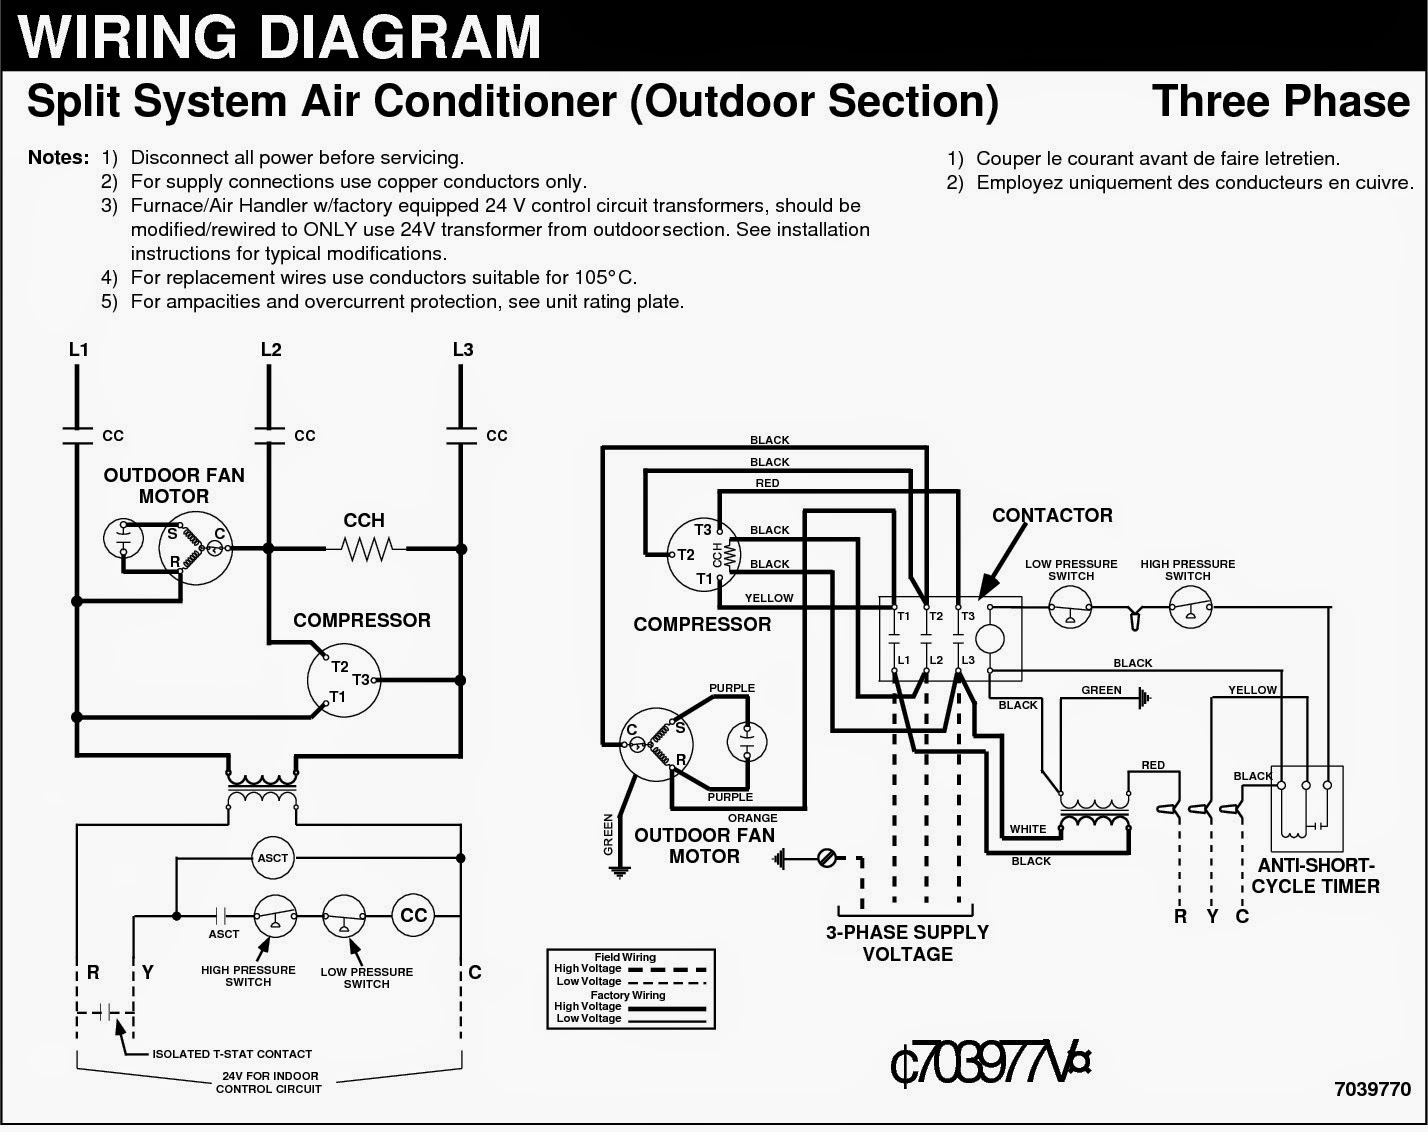 3+phase electrical wiring diagrams for air conditioning systems part two ac wiring diagram at virtualis.co